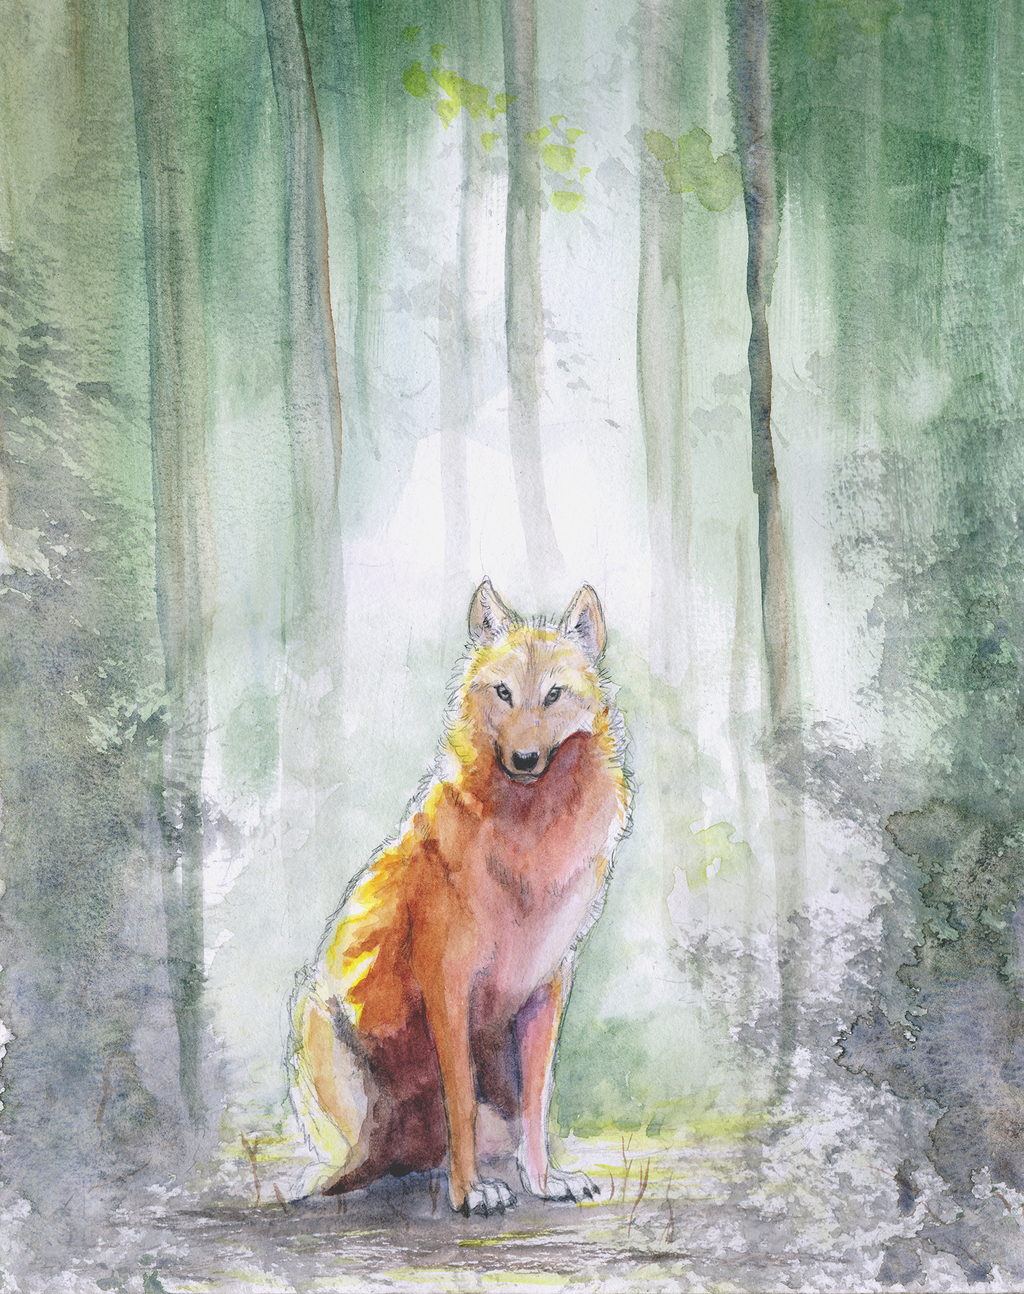 Most recent image: Wolf of the Woods